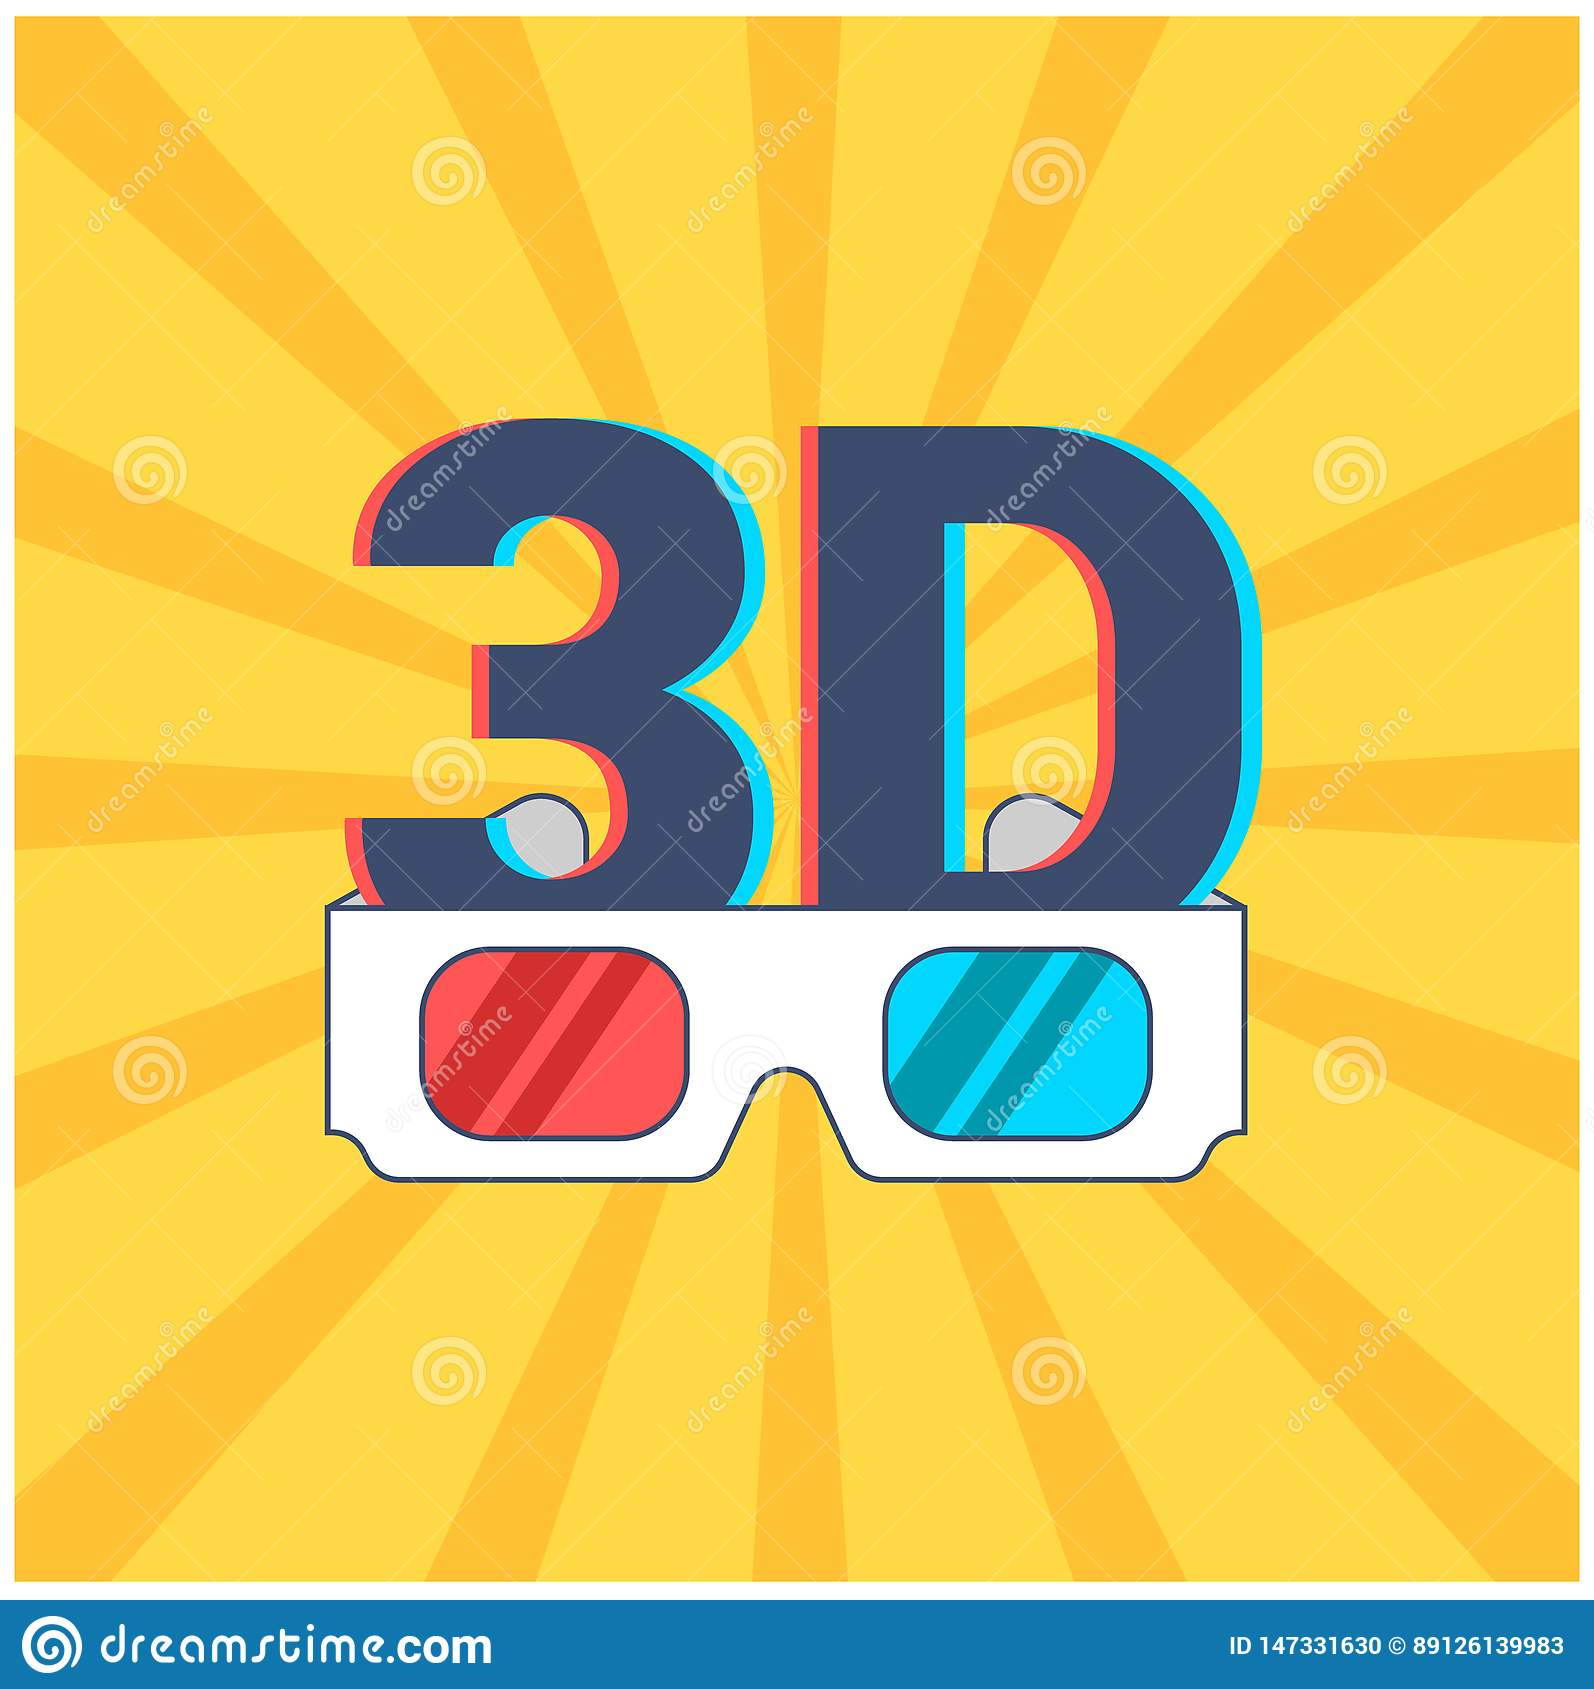 Icon of 3D and glasses with red